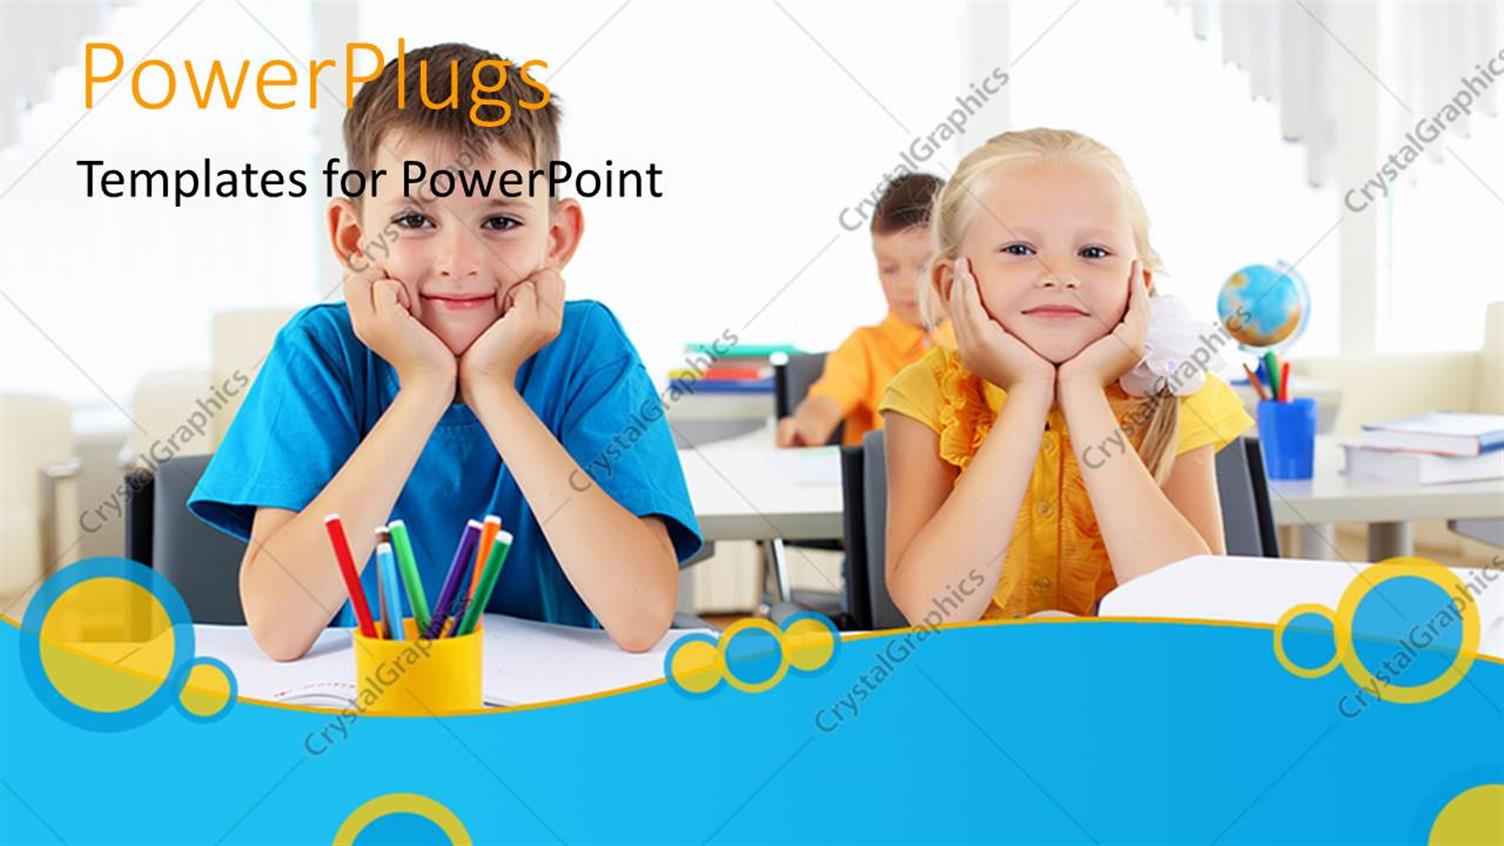 PowerPoint Template Displaying little Children Learning in Classroom with Pencils and Desks